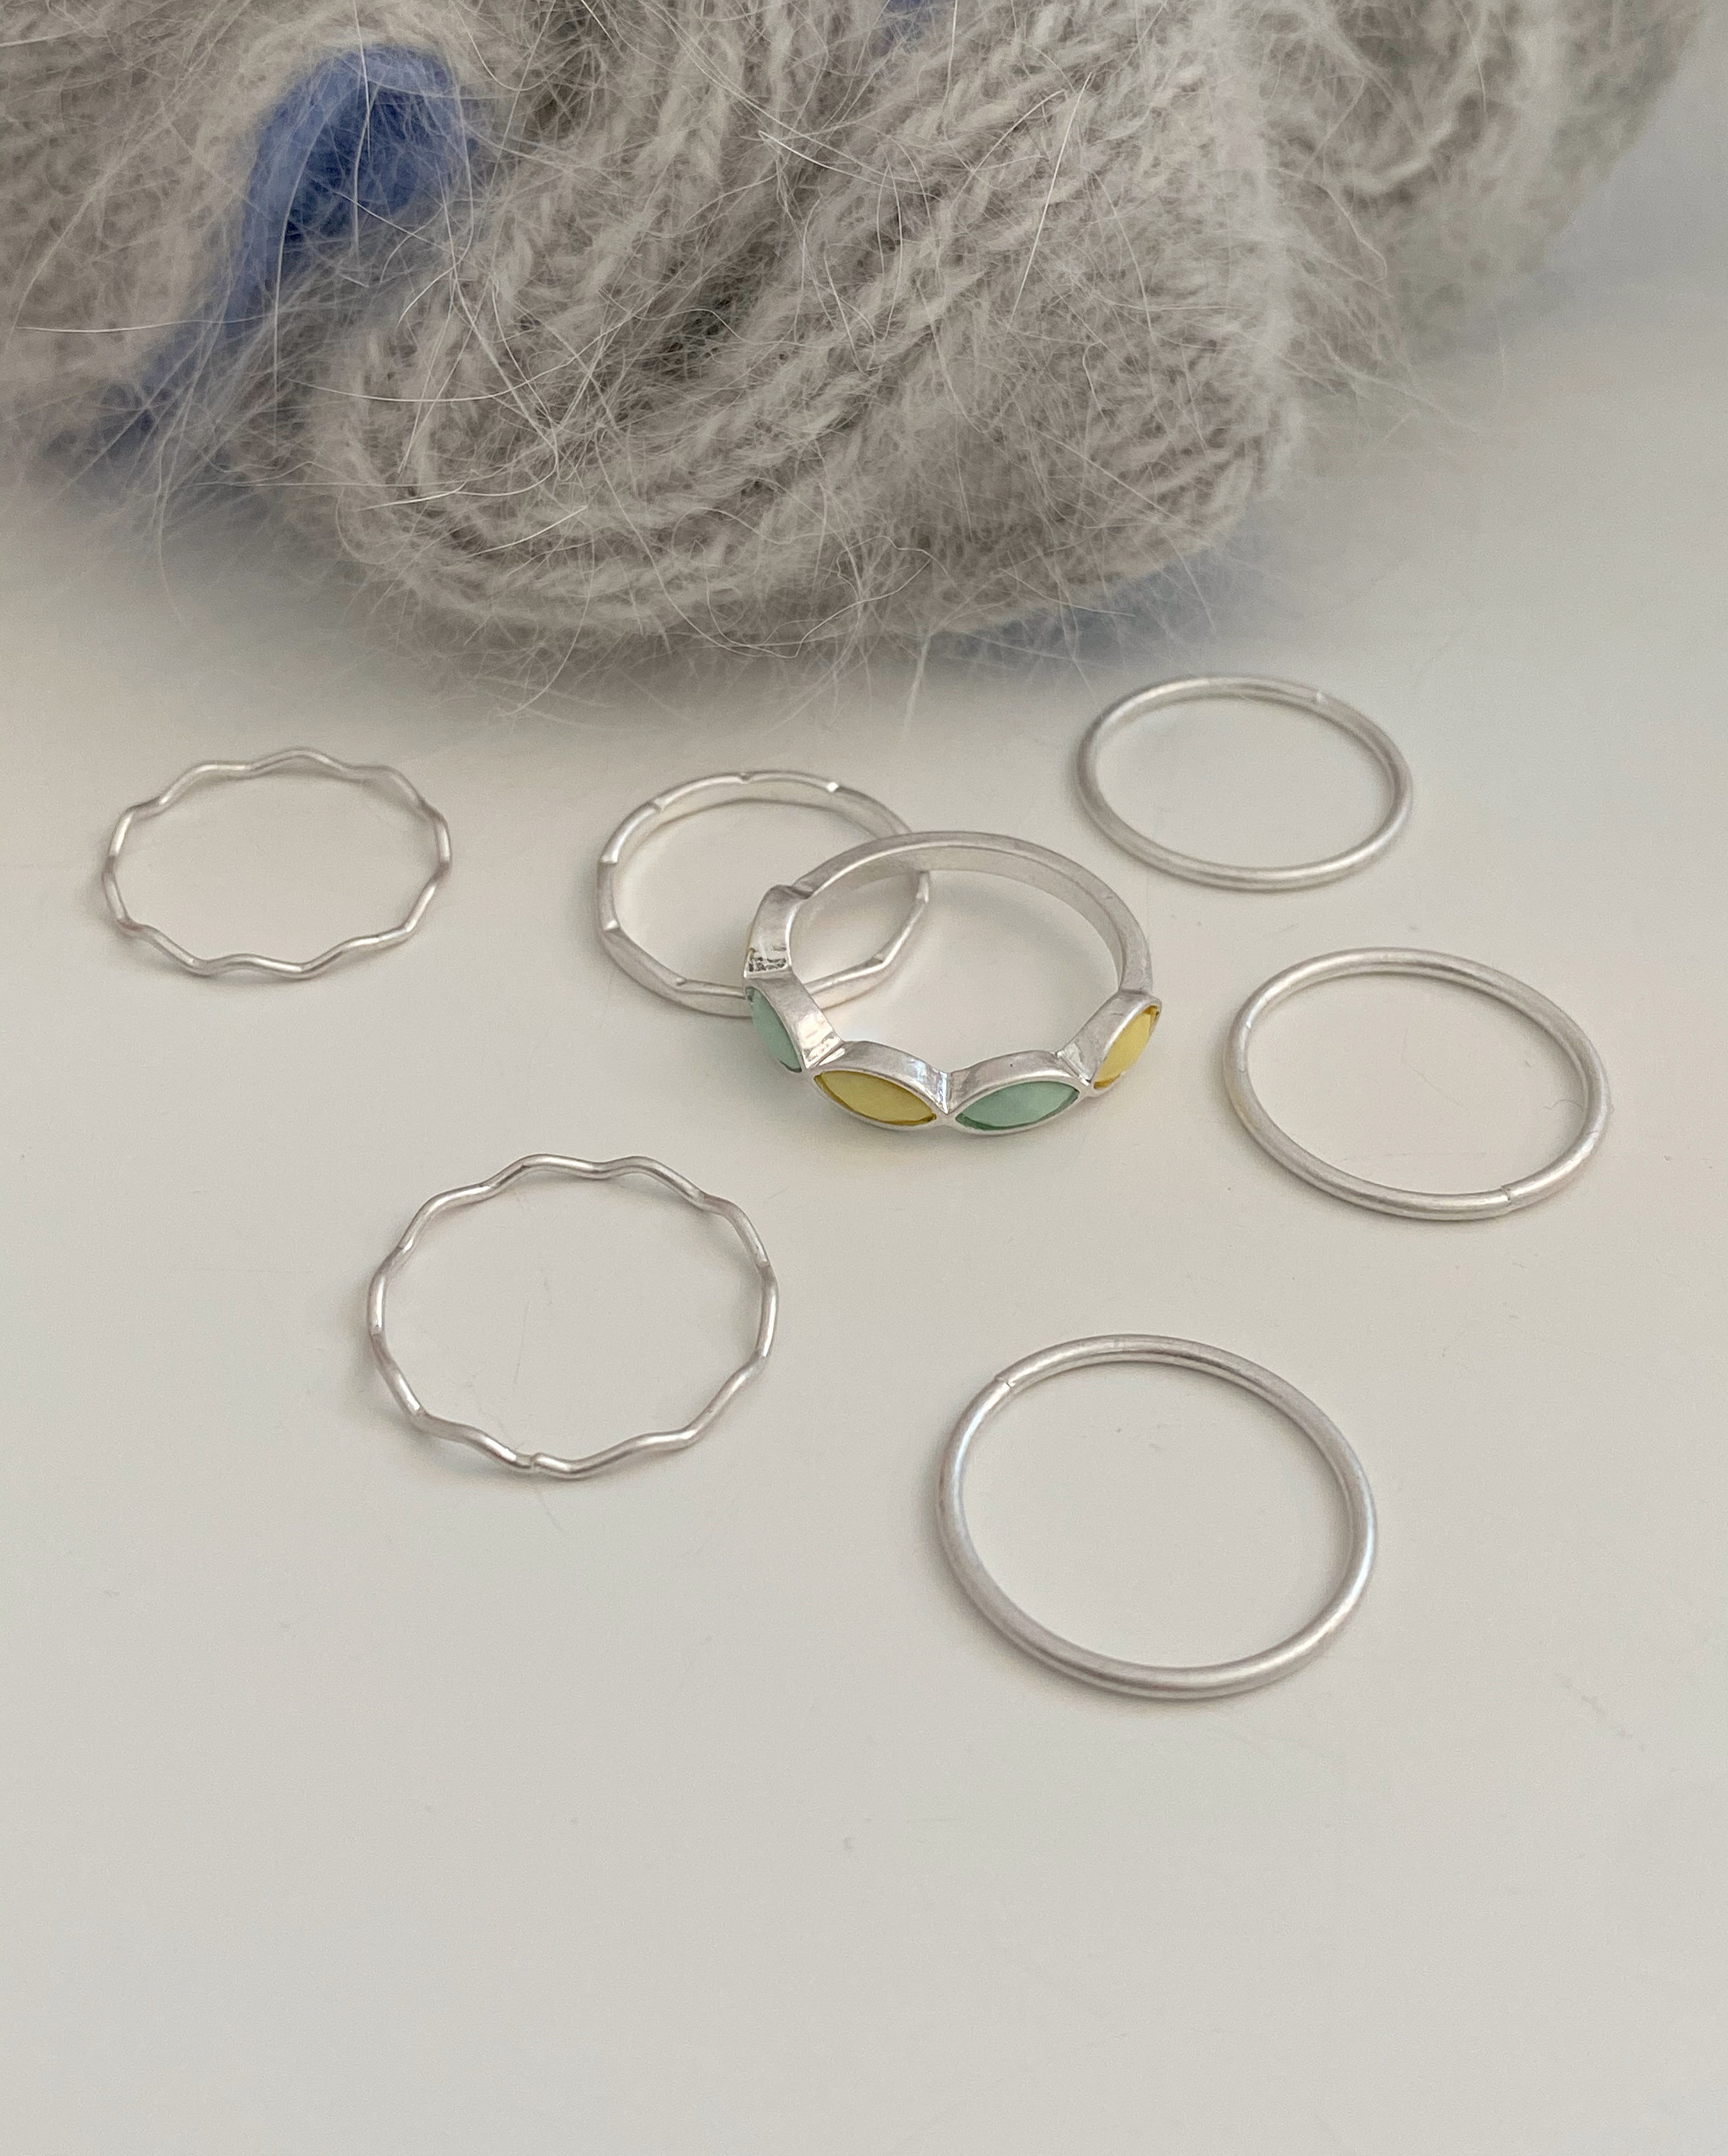 7ps apeach ring set